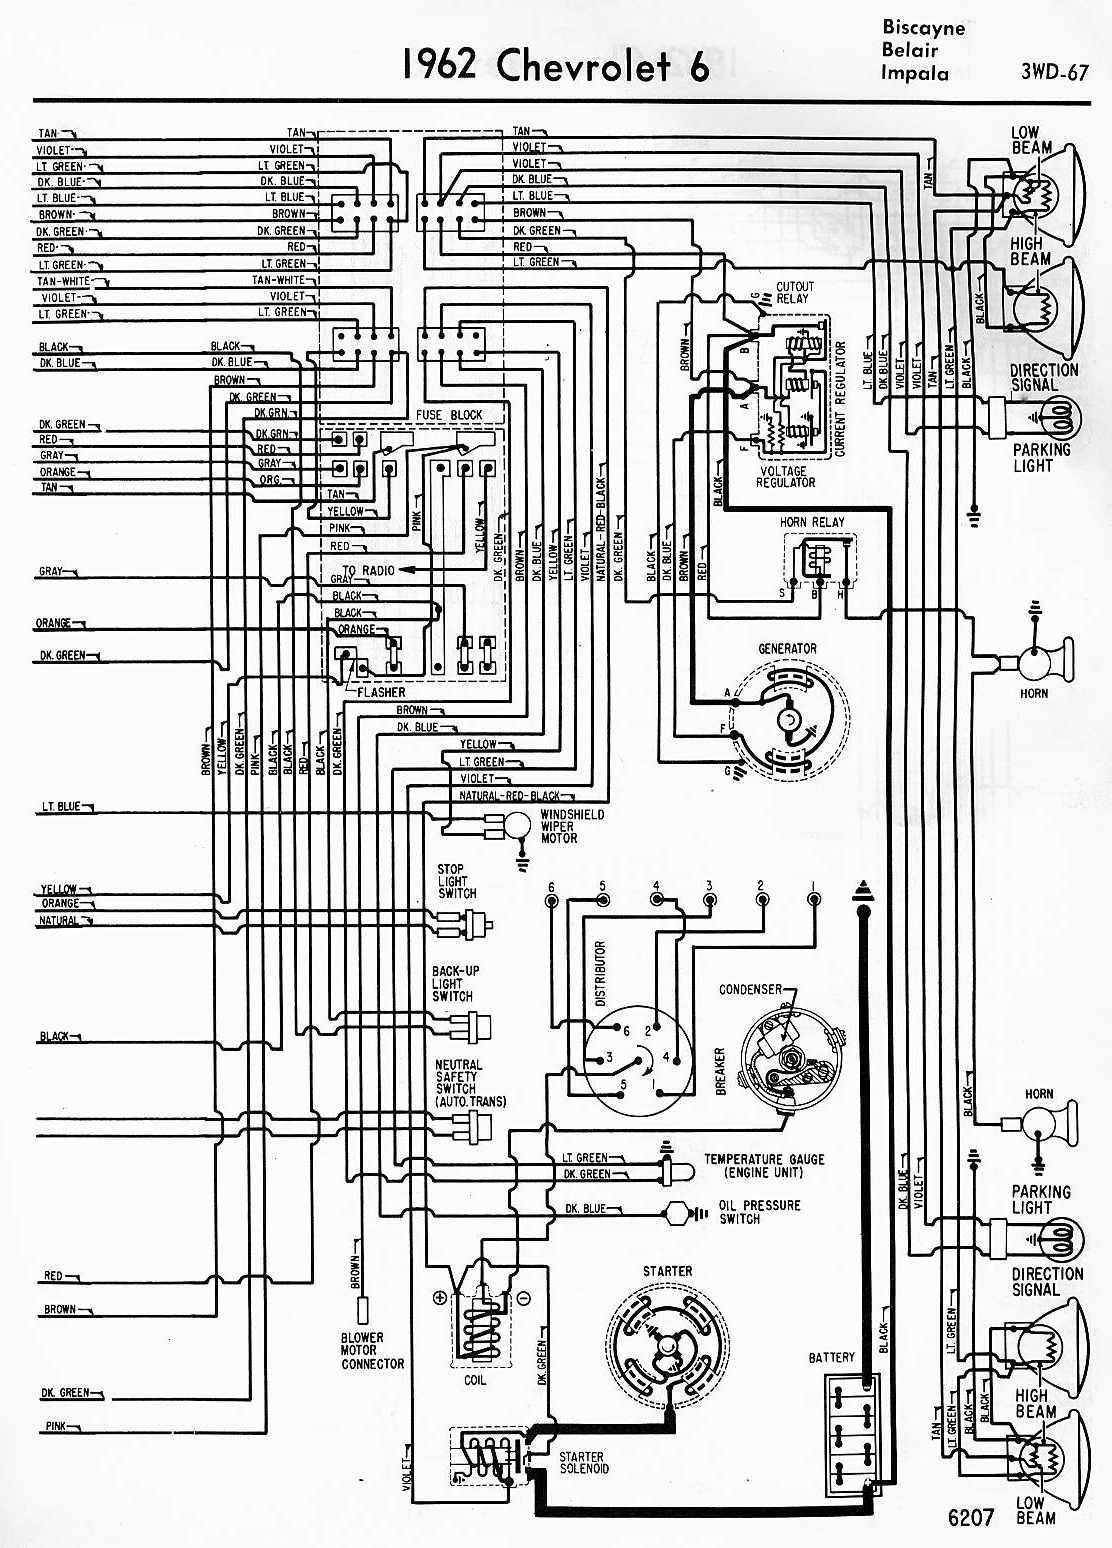 small resolution of 1962 chevy c10 wiring diagram wiring diagram schematics 1960 chevy wiring diagram 1962 chevy wiring diagram